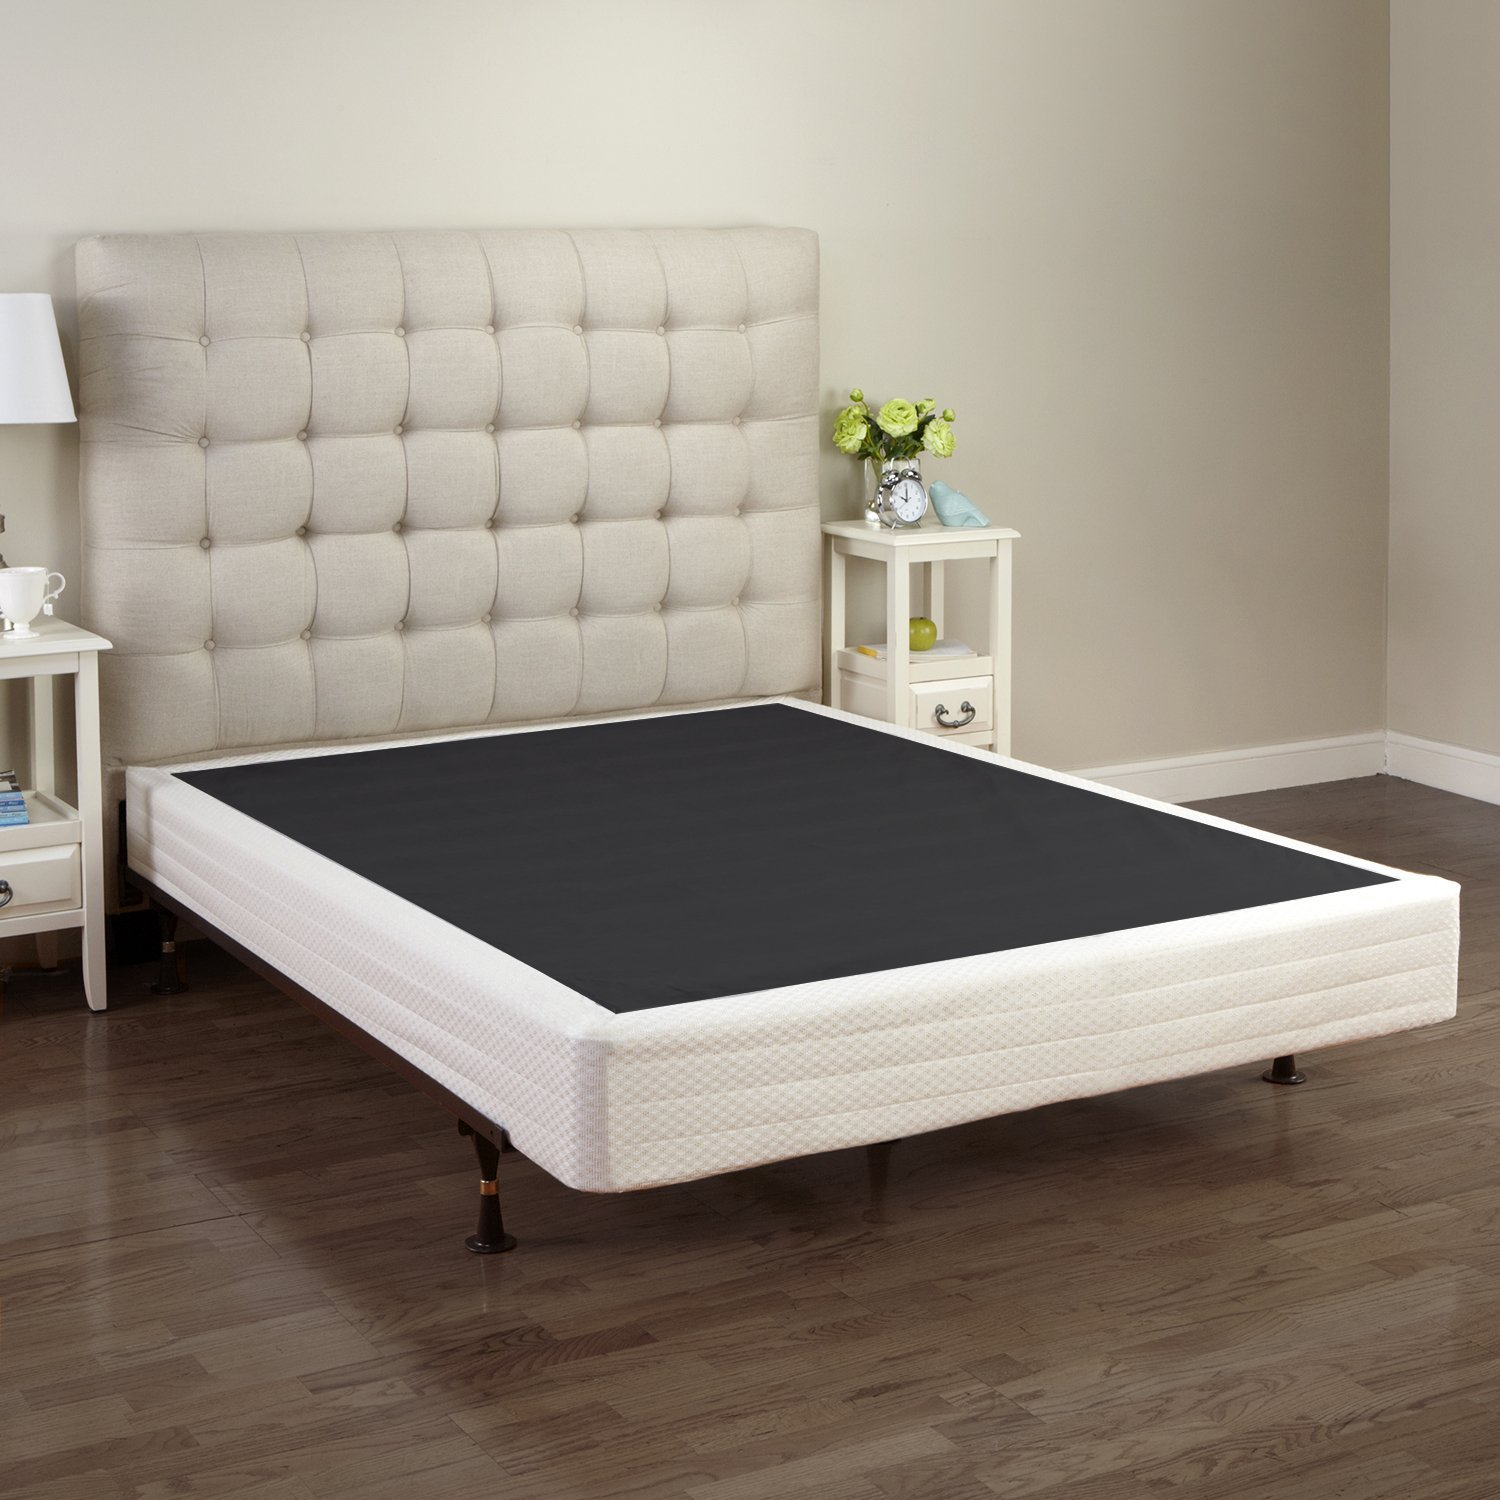 Top 10 Best Mattress Foundations in 2017 Review